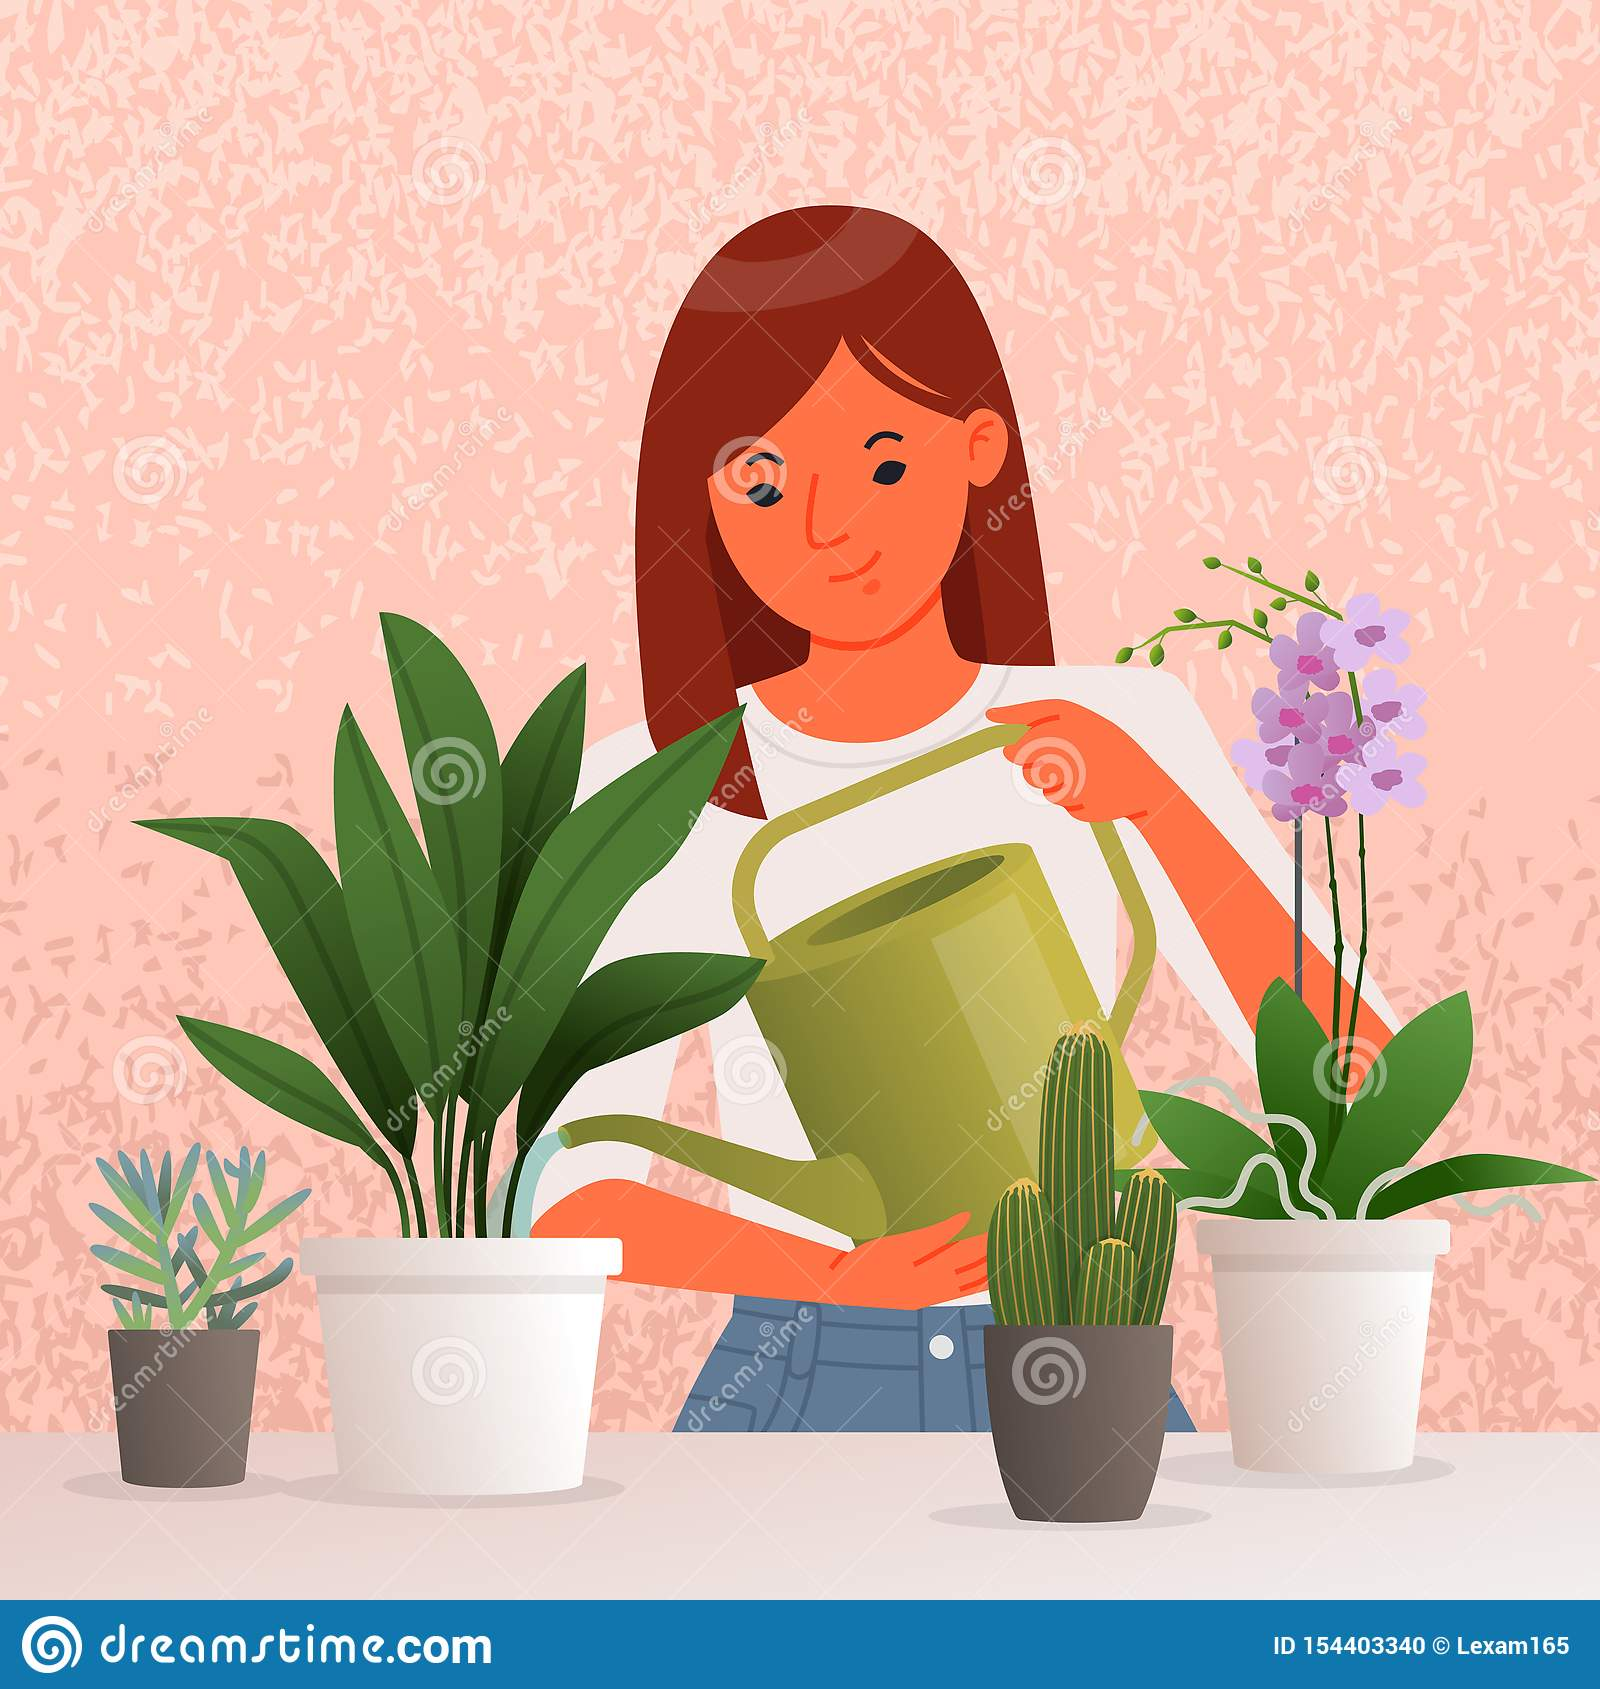 Beautiful Young Woman Watering Houseplants. Caring For ... on tall slim plants, talking plants, positive energy plants, respecting plants, sharing plants, awesome plants, most important plants, detailed plants, creative plants, england plants, strong plants, balanced plants, resilient plants, learning plants, meaningful plants, peaceful plants, tough plants, protecting plants, friendly plants, loving plants,